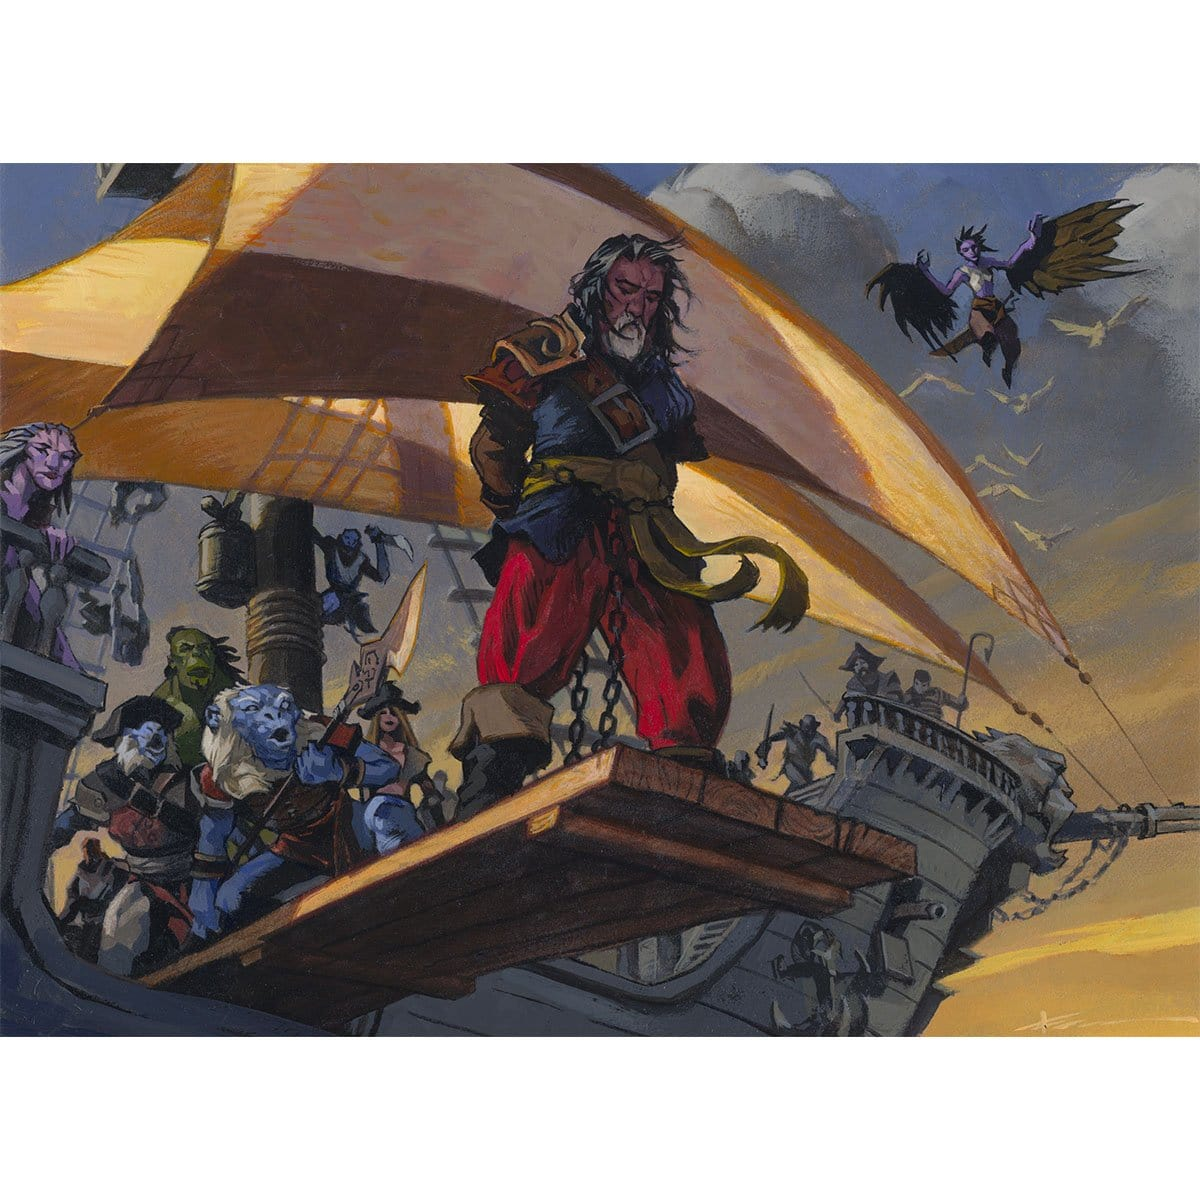 Walk the Plank Print - Print - Original Magic Art - Accessories for Magic the Gathering and other card games